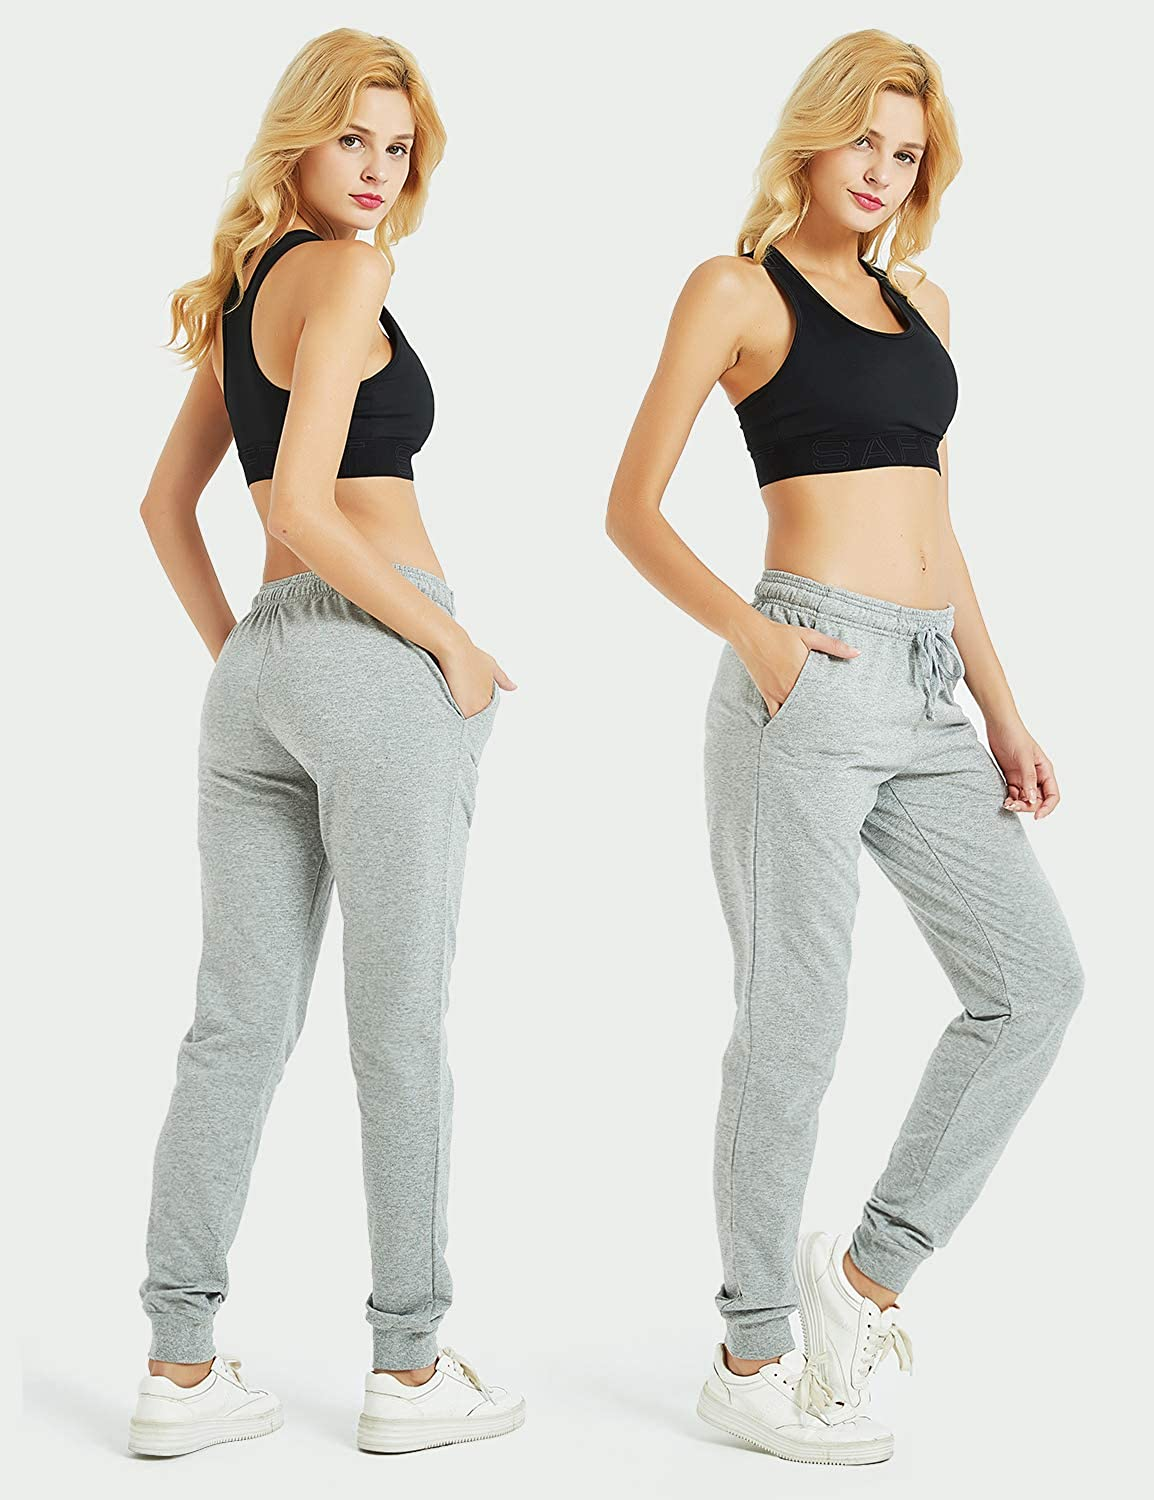 Casual Sweatpants Tracksuit Bottoms with 3 Pockets Safort 30//32//34 Inseam Tall Regular Women 100/% Cotton Jogger Pants